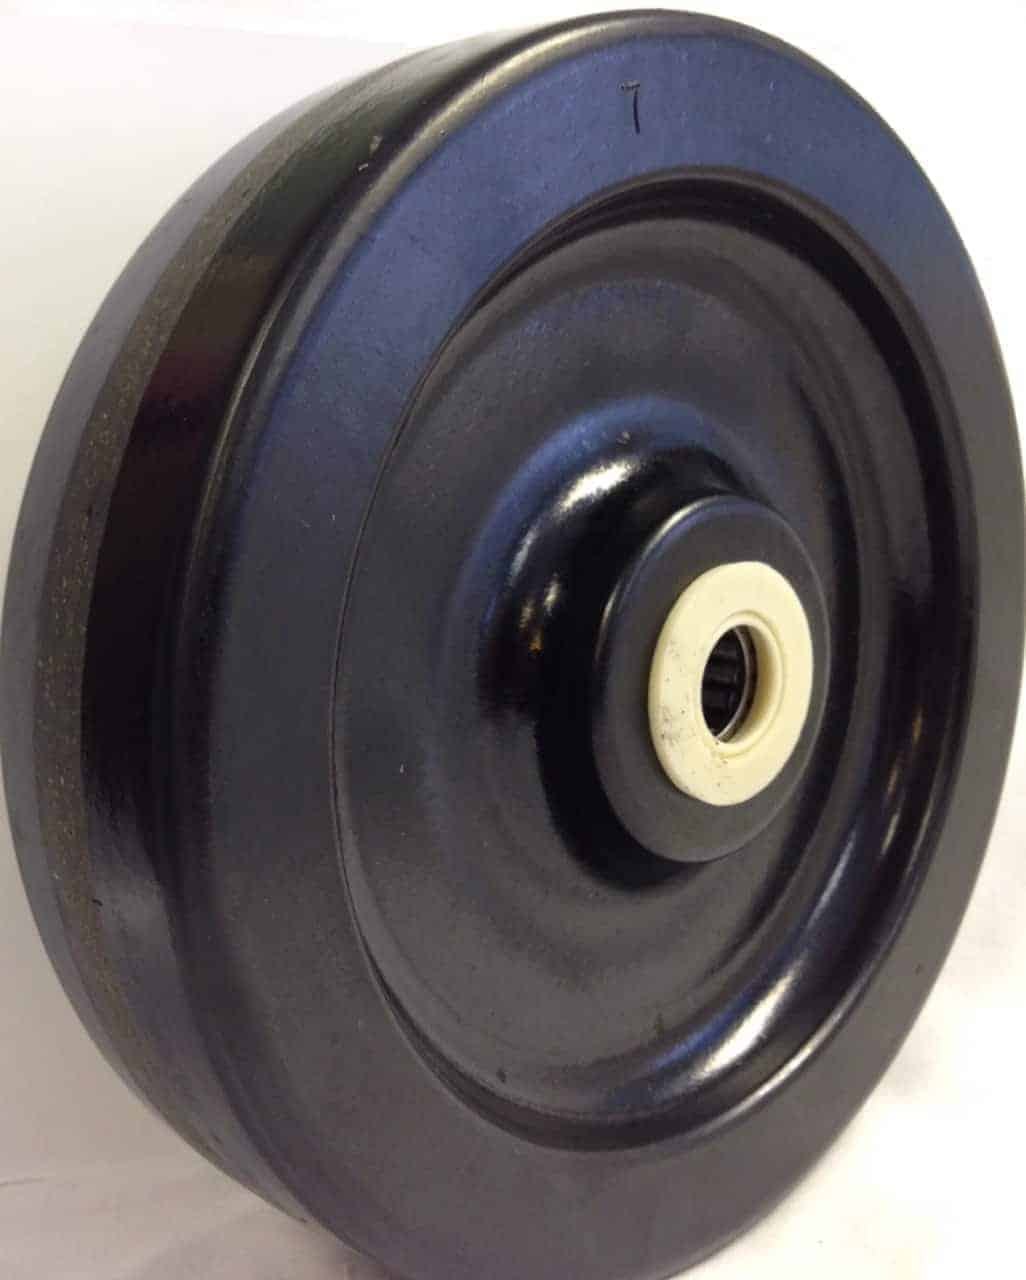 12″ Phenolic Wheel With 2-3/4″ Hub 1-1/4″ Roller Bearing 3000 Lbs Capacity